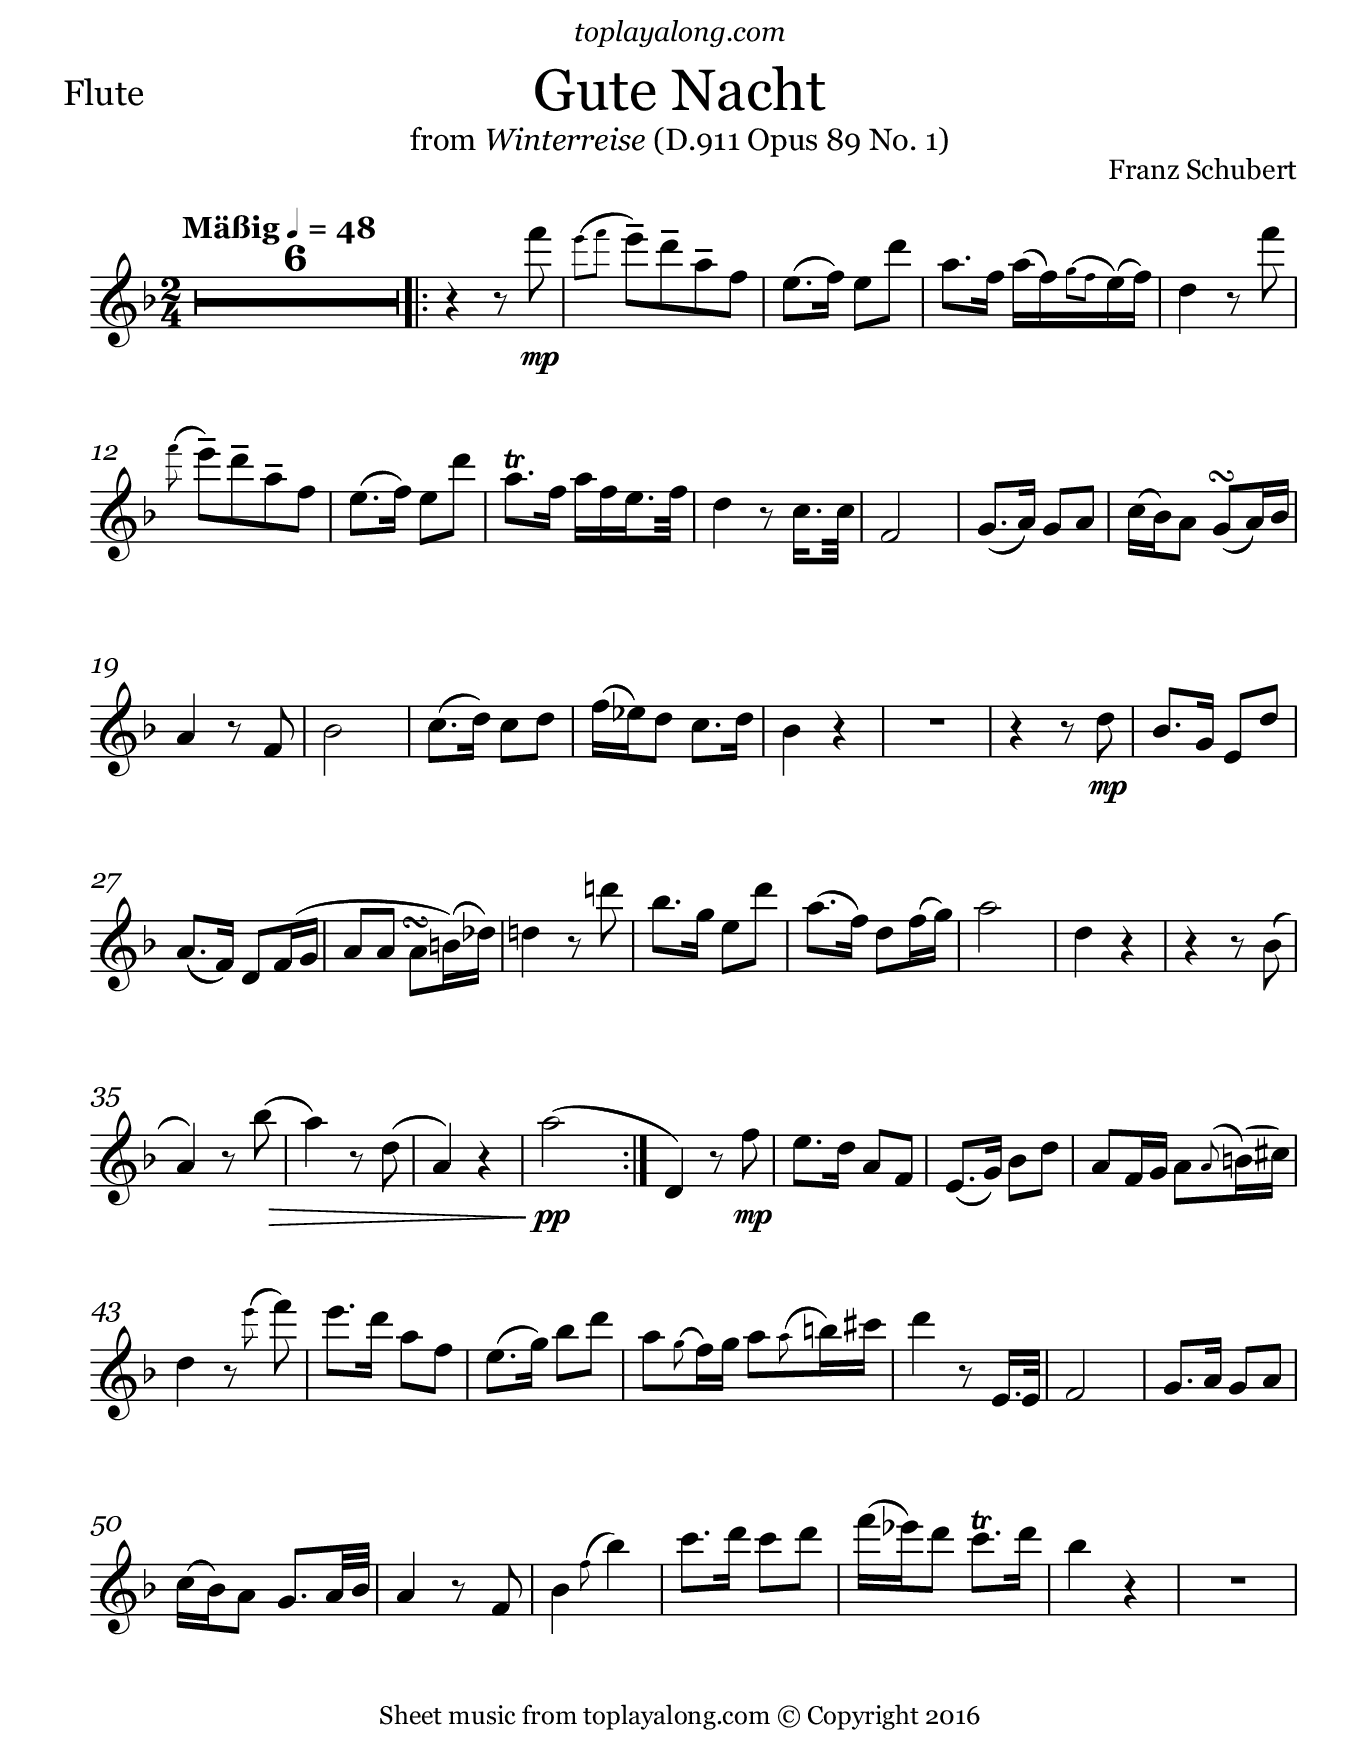 Gute Nacht from Winterreise by Schubert. Sheet music for Flute, page 1.